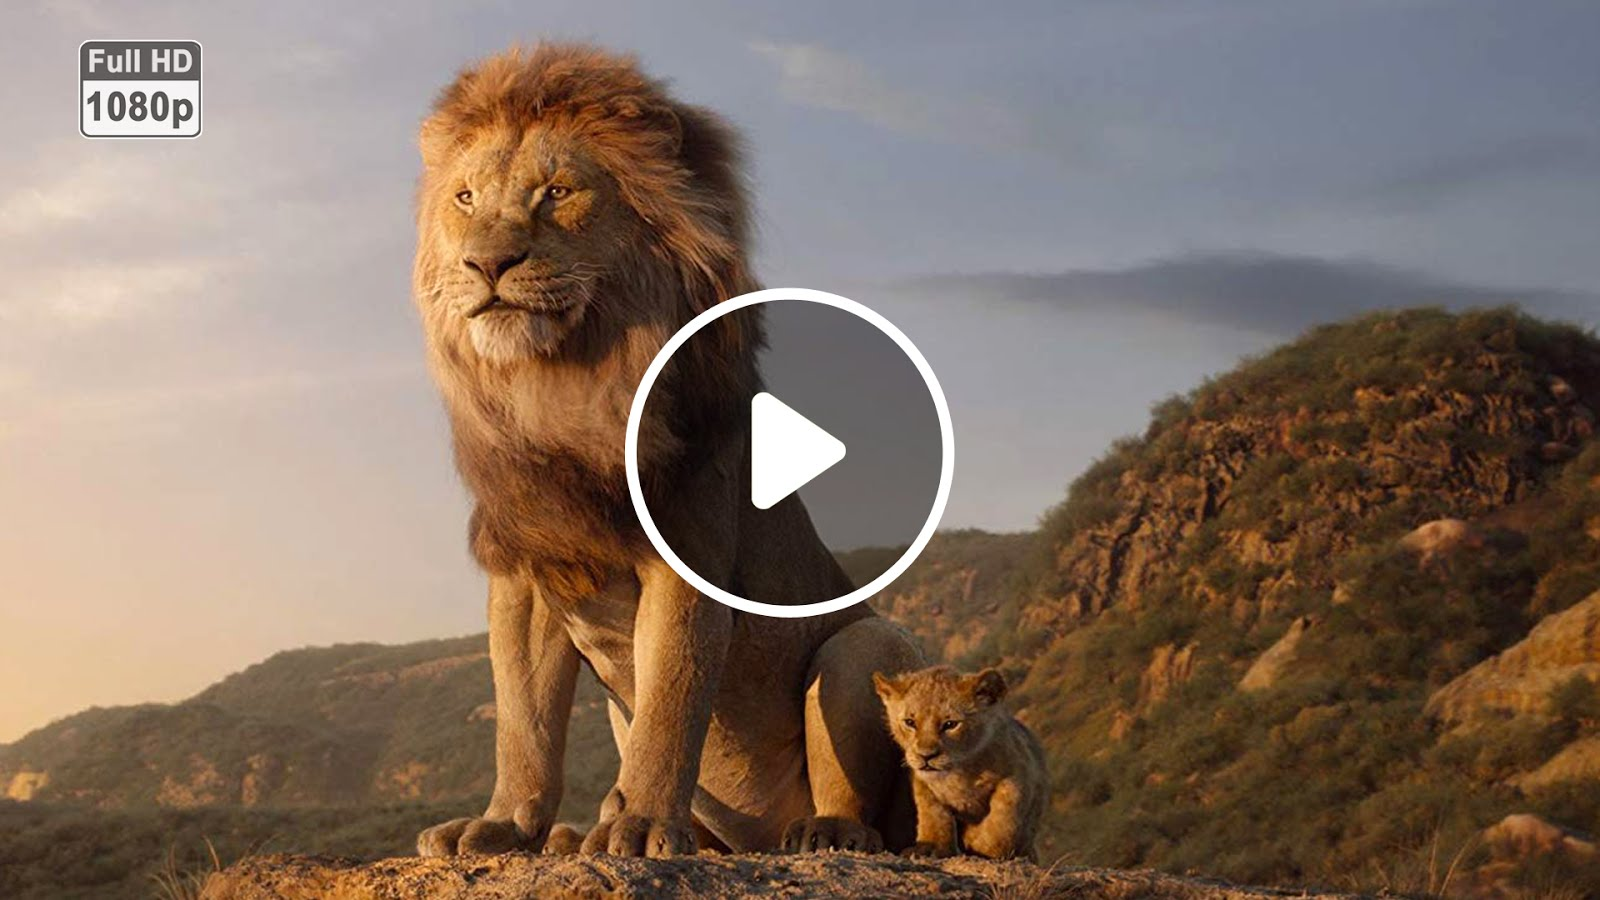 simba the lion king full movie zulu free download